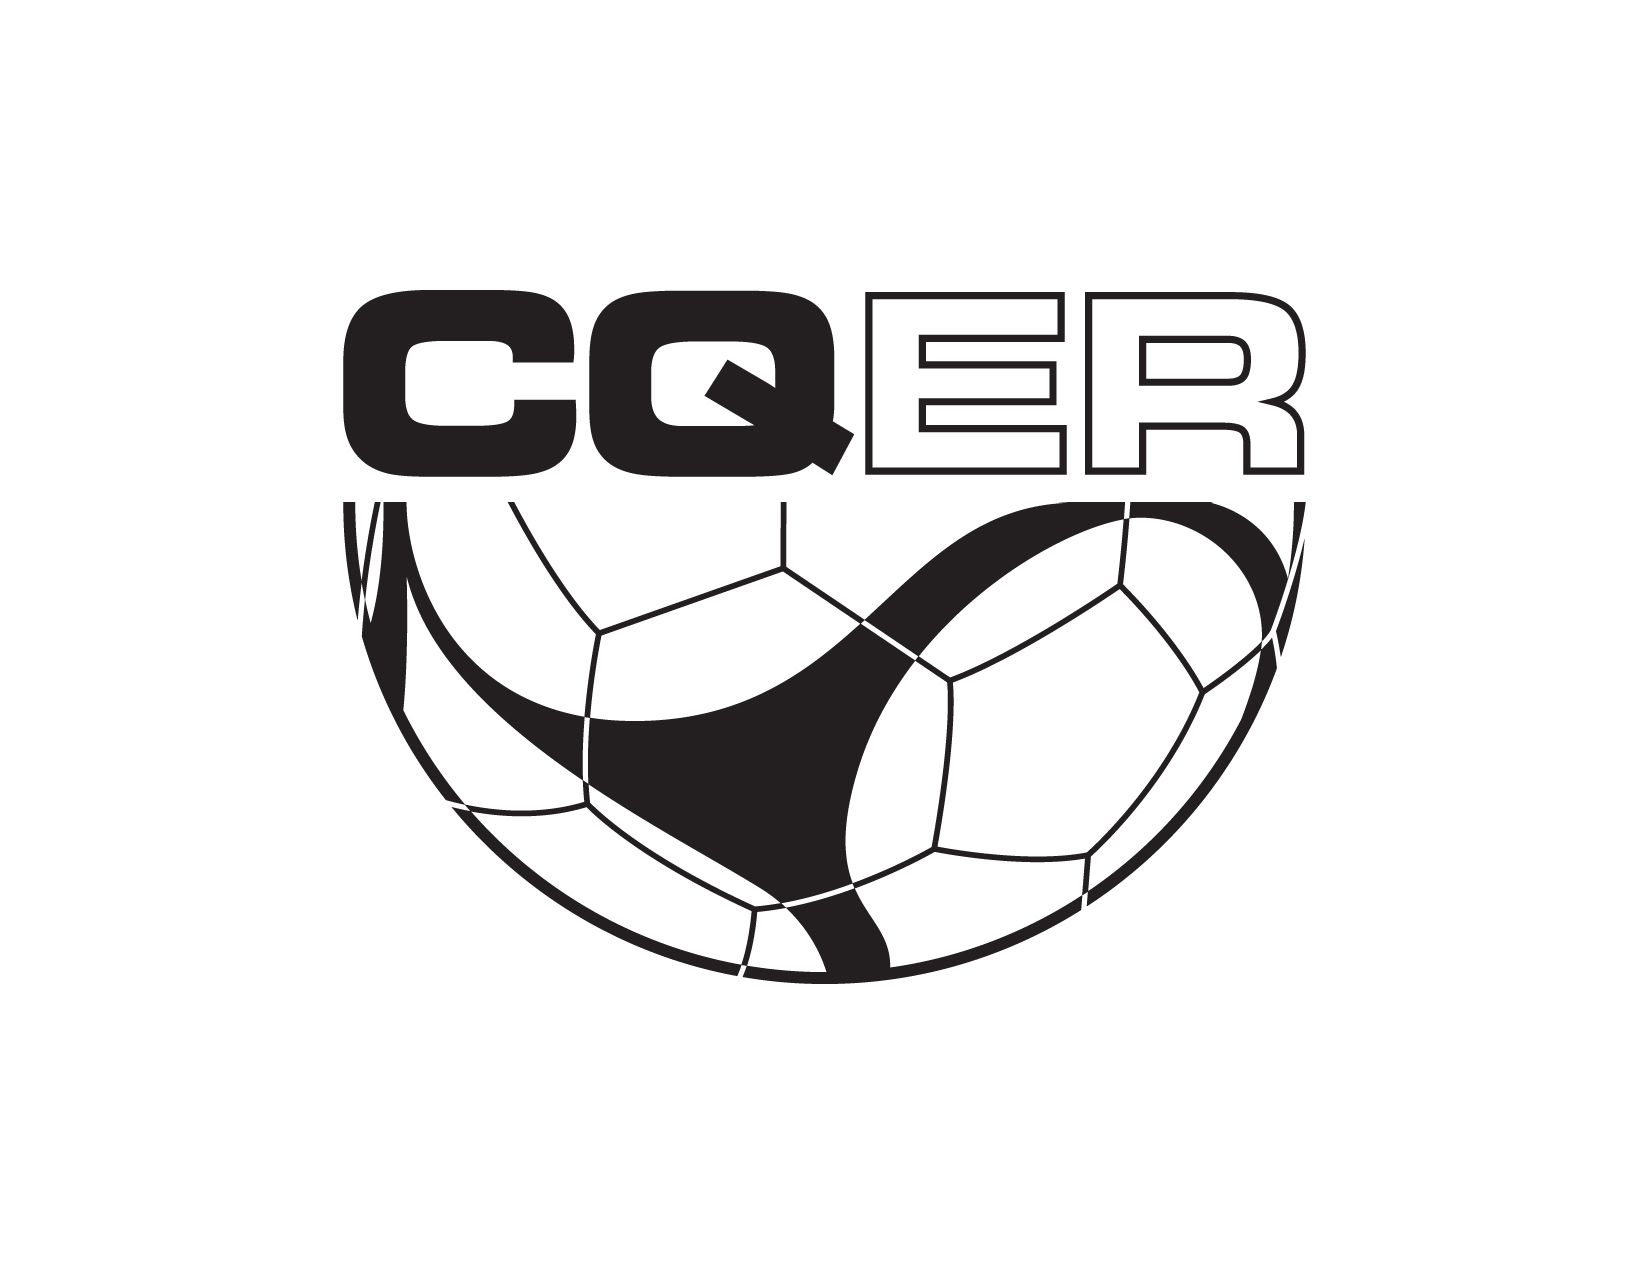 CQER Soccer Club Logo by StepFar on DeviantArt